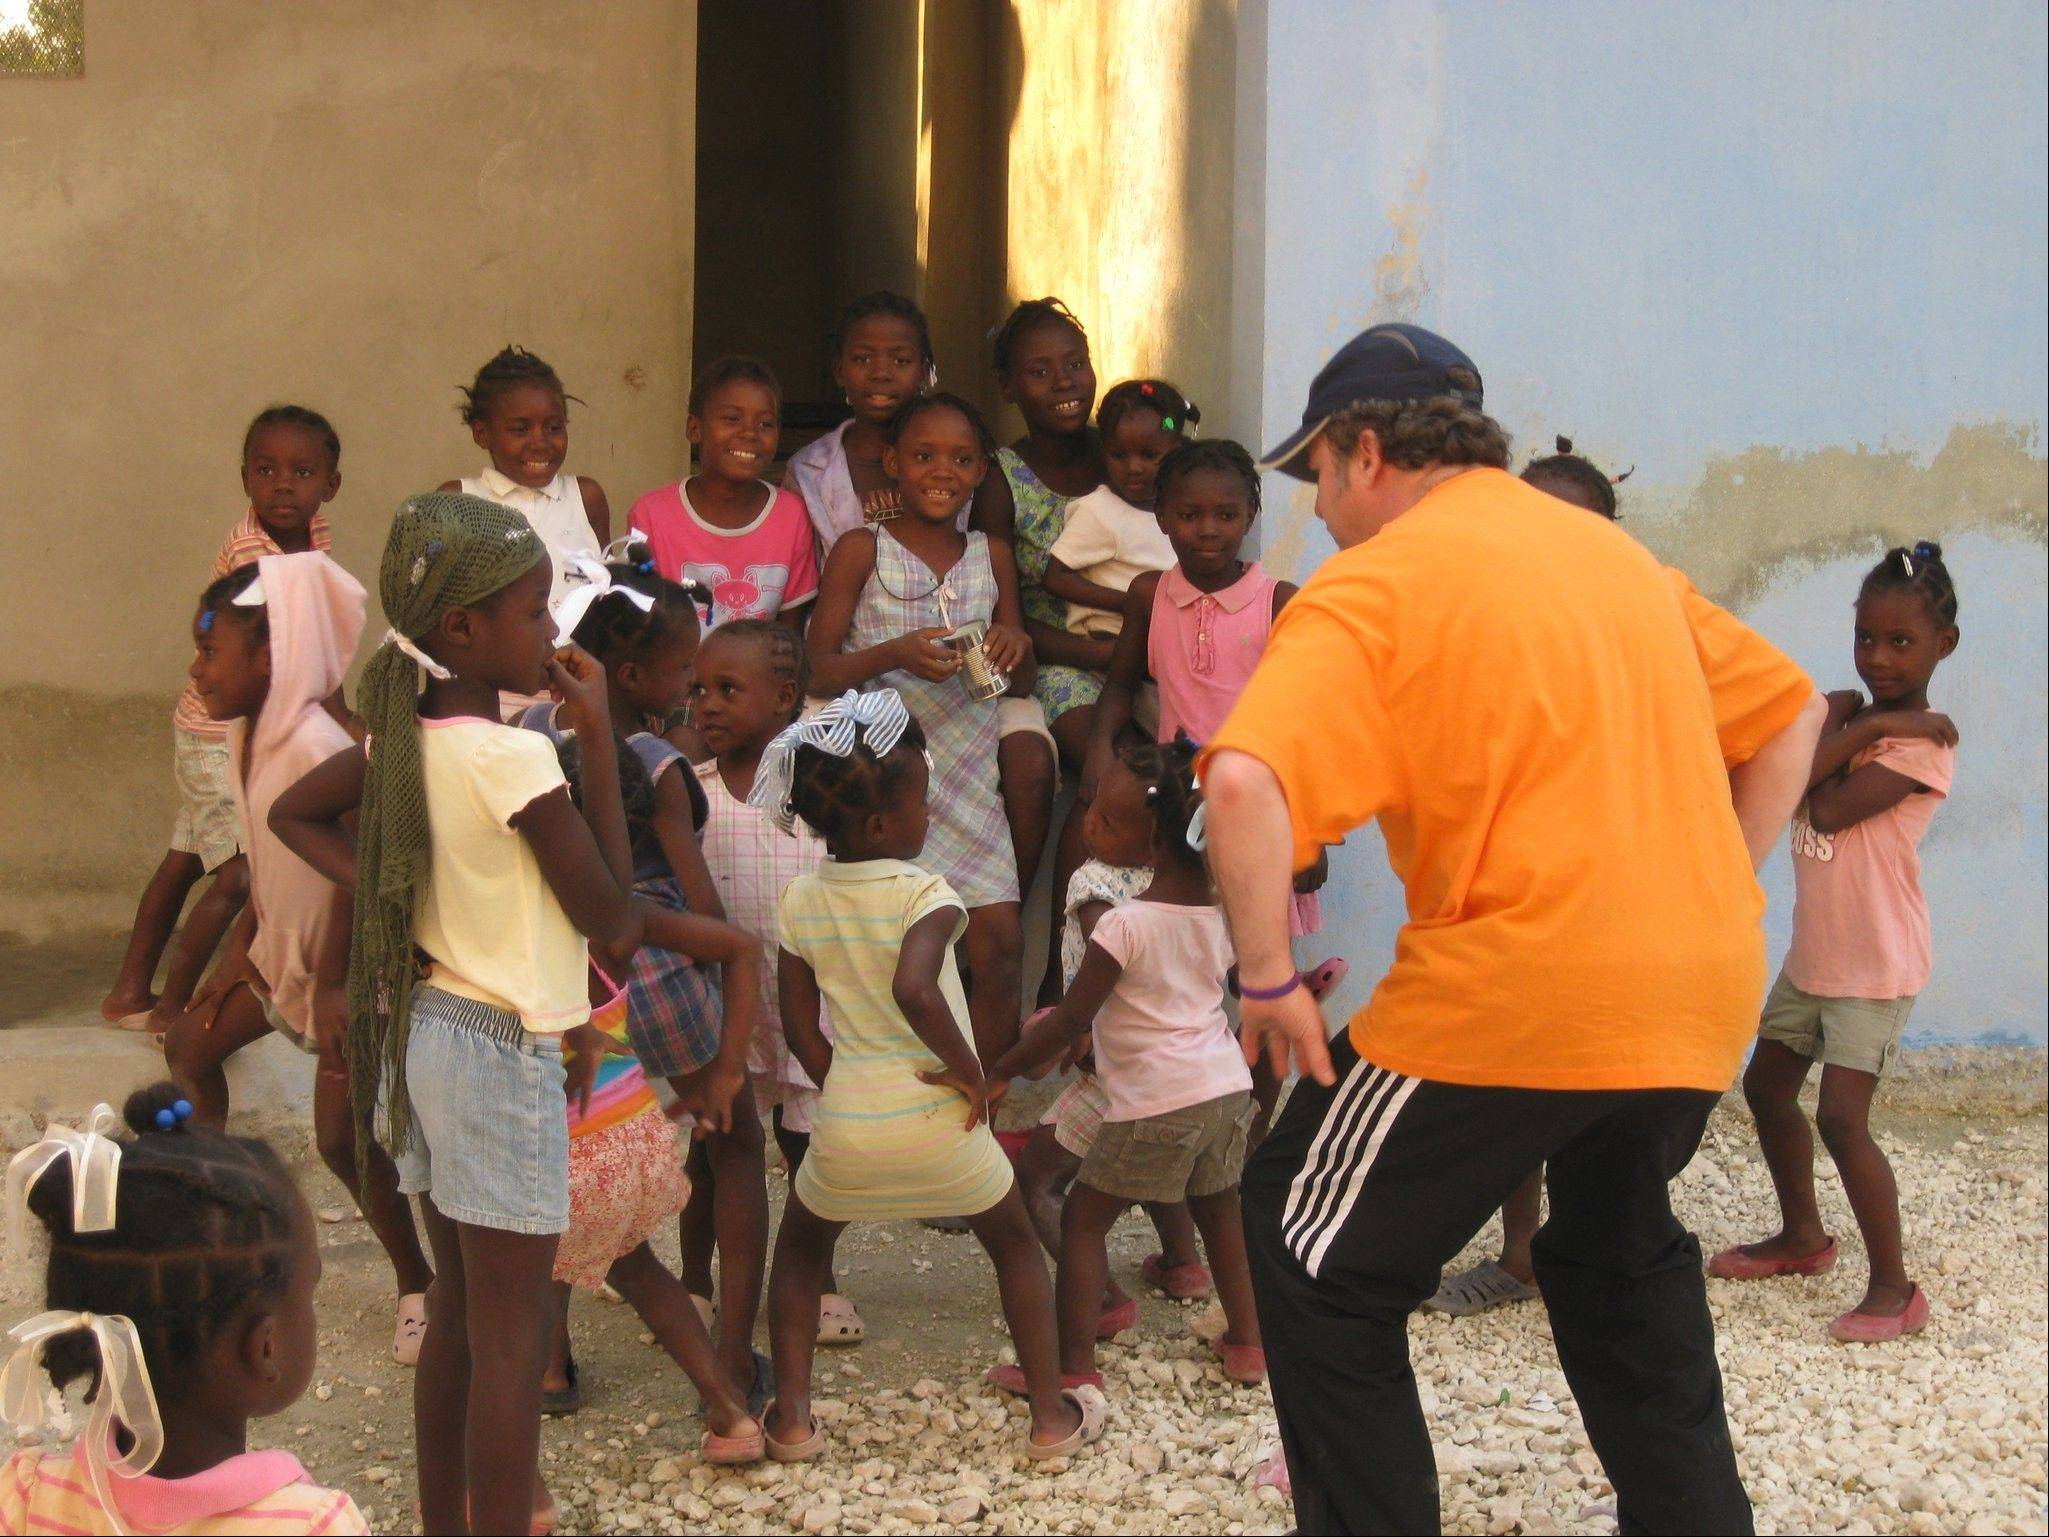 Brian Reynolds of Arlington Heights goofs around with schoolchildren in Haiti.